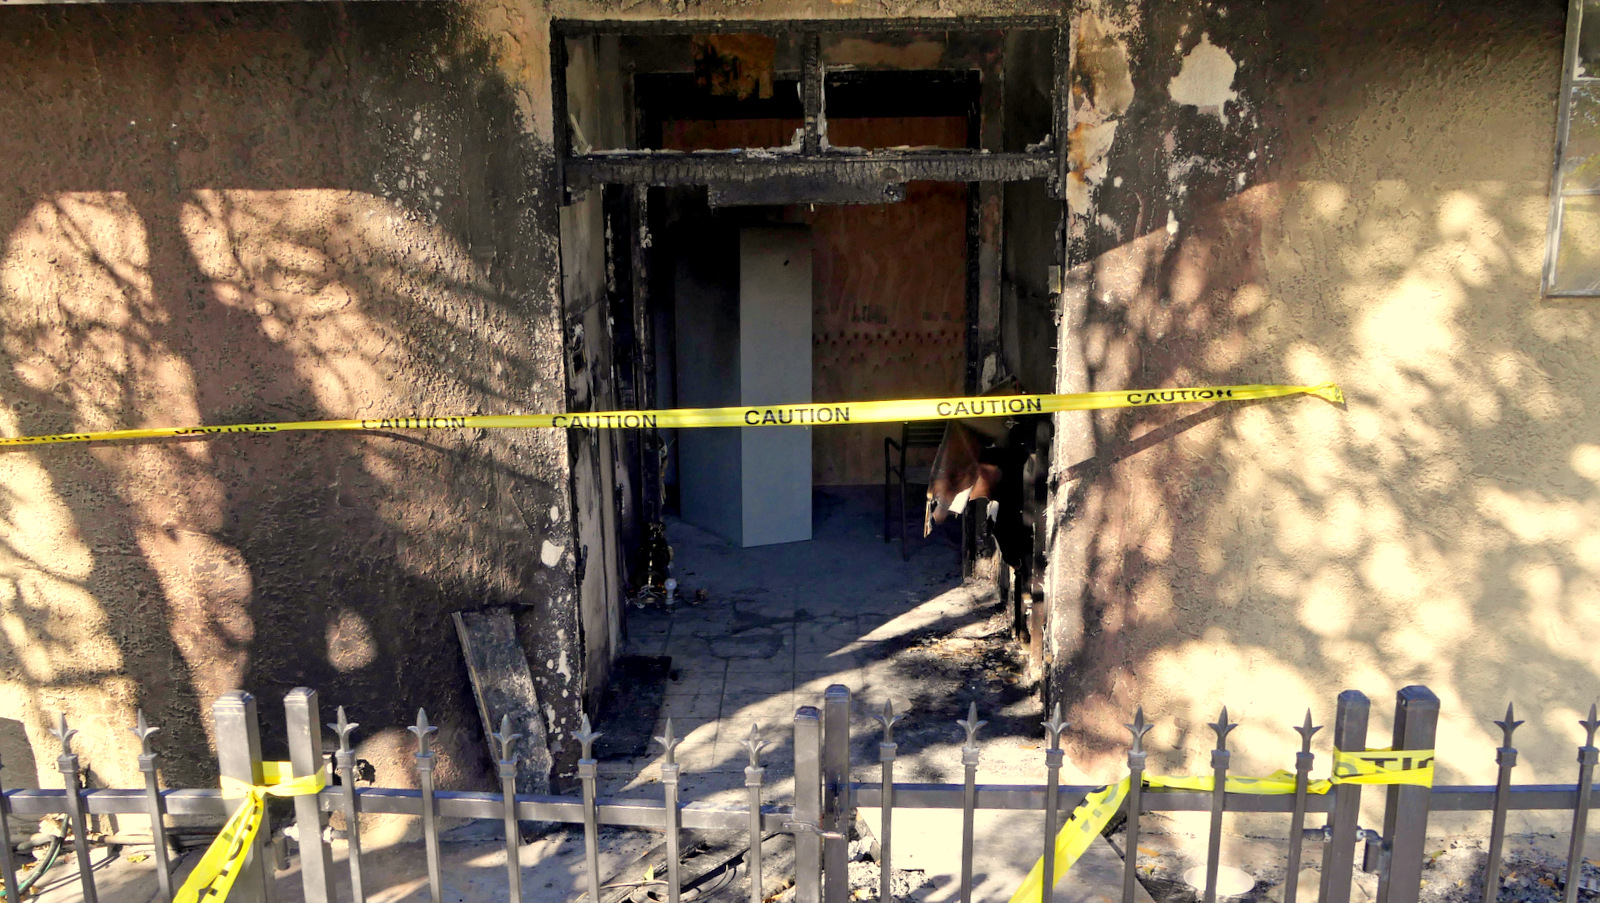 Police tape marks off the burned front lobby of the Islamic Center of Palm Springs in Coachella, Calif., on Saturday, Dec. 12, 2015. Flames were reported just after noon on Friday. The fire was contained to the small building's front lobby, and no one was injured. (AP Photo/David Martin)